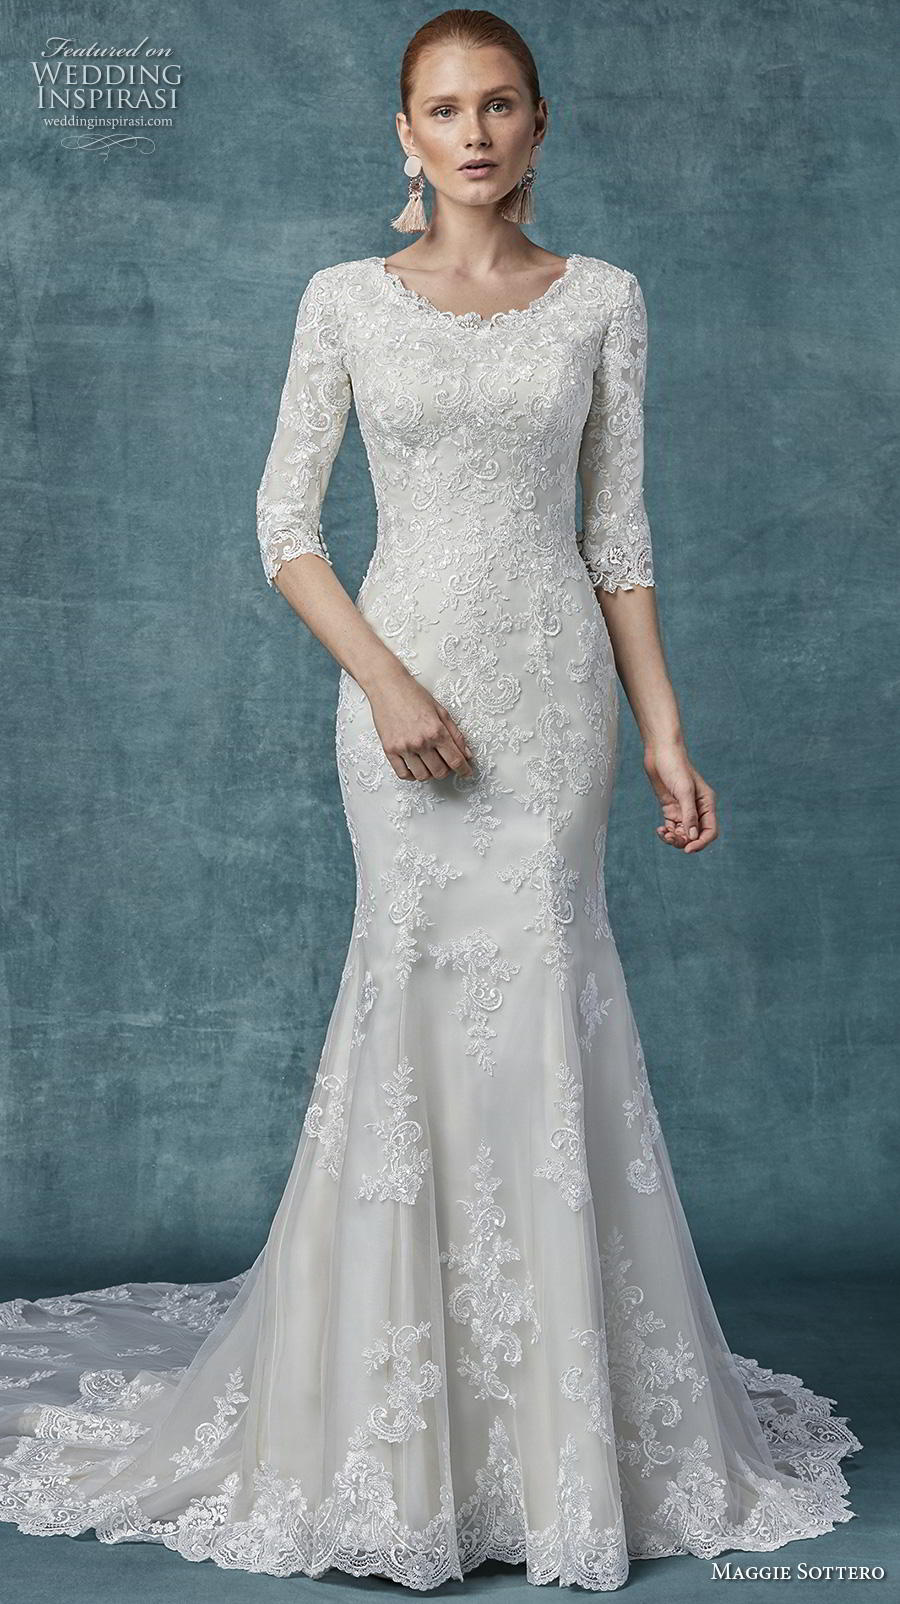 Maggie Sottero Spring 2019 Wedding Dresses Alistaire